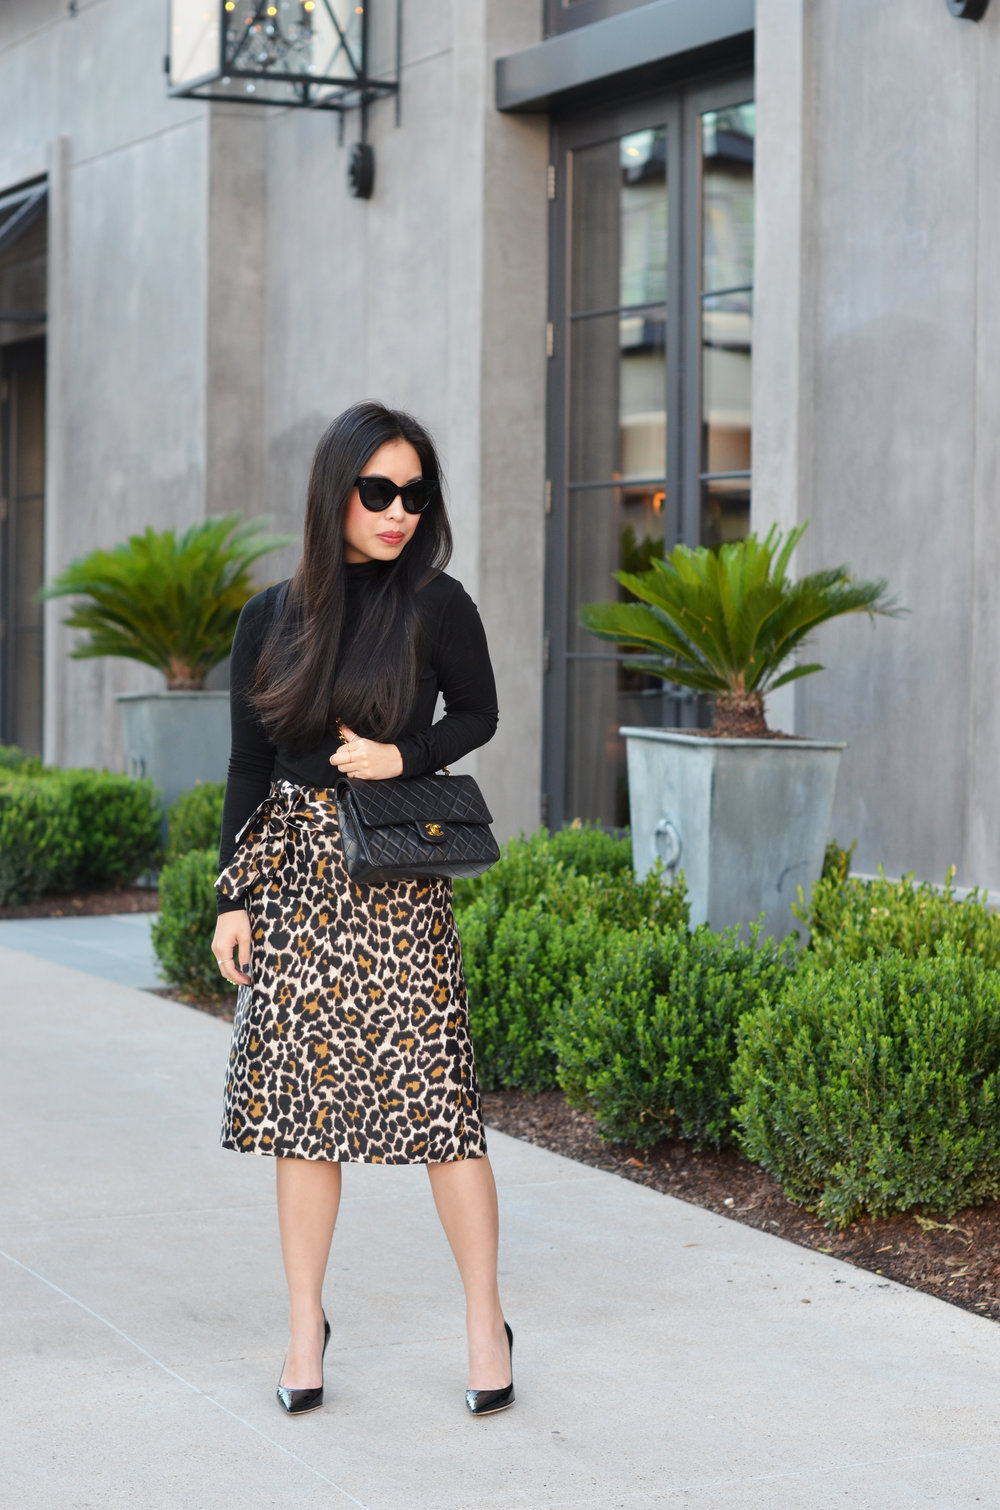 the-leopard-print-skirt-jannadoan.com